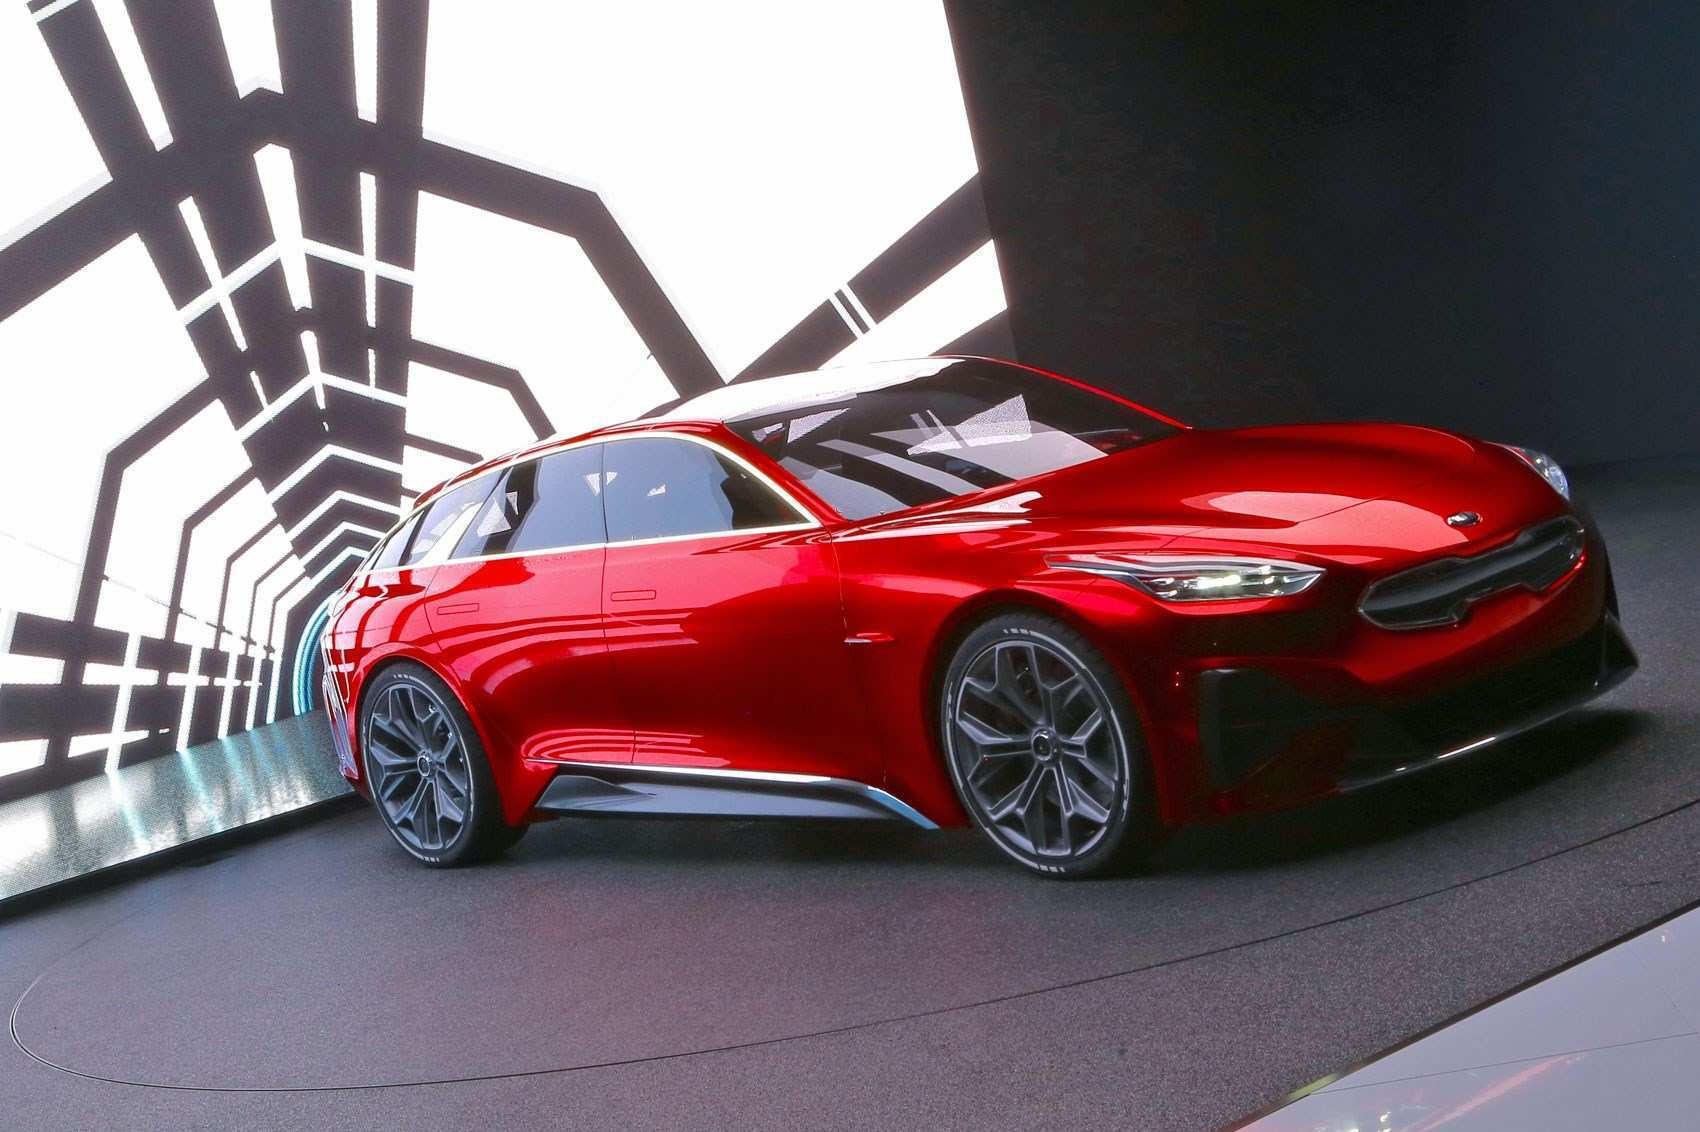 41 New Proceed Kia 2020 Style by Proceed Kia 2020